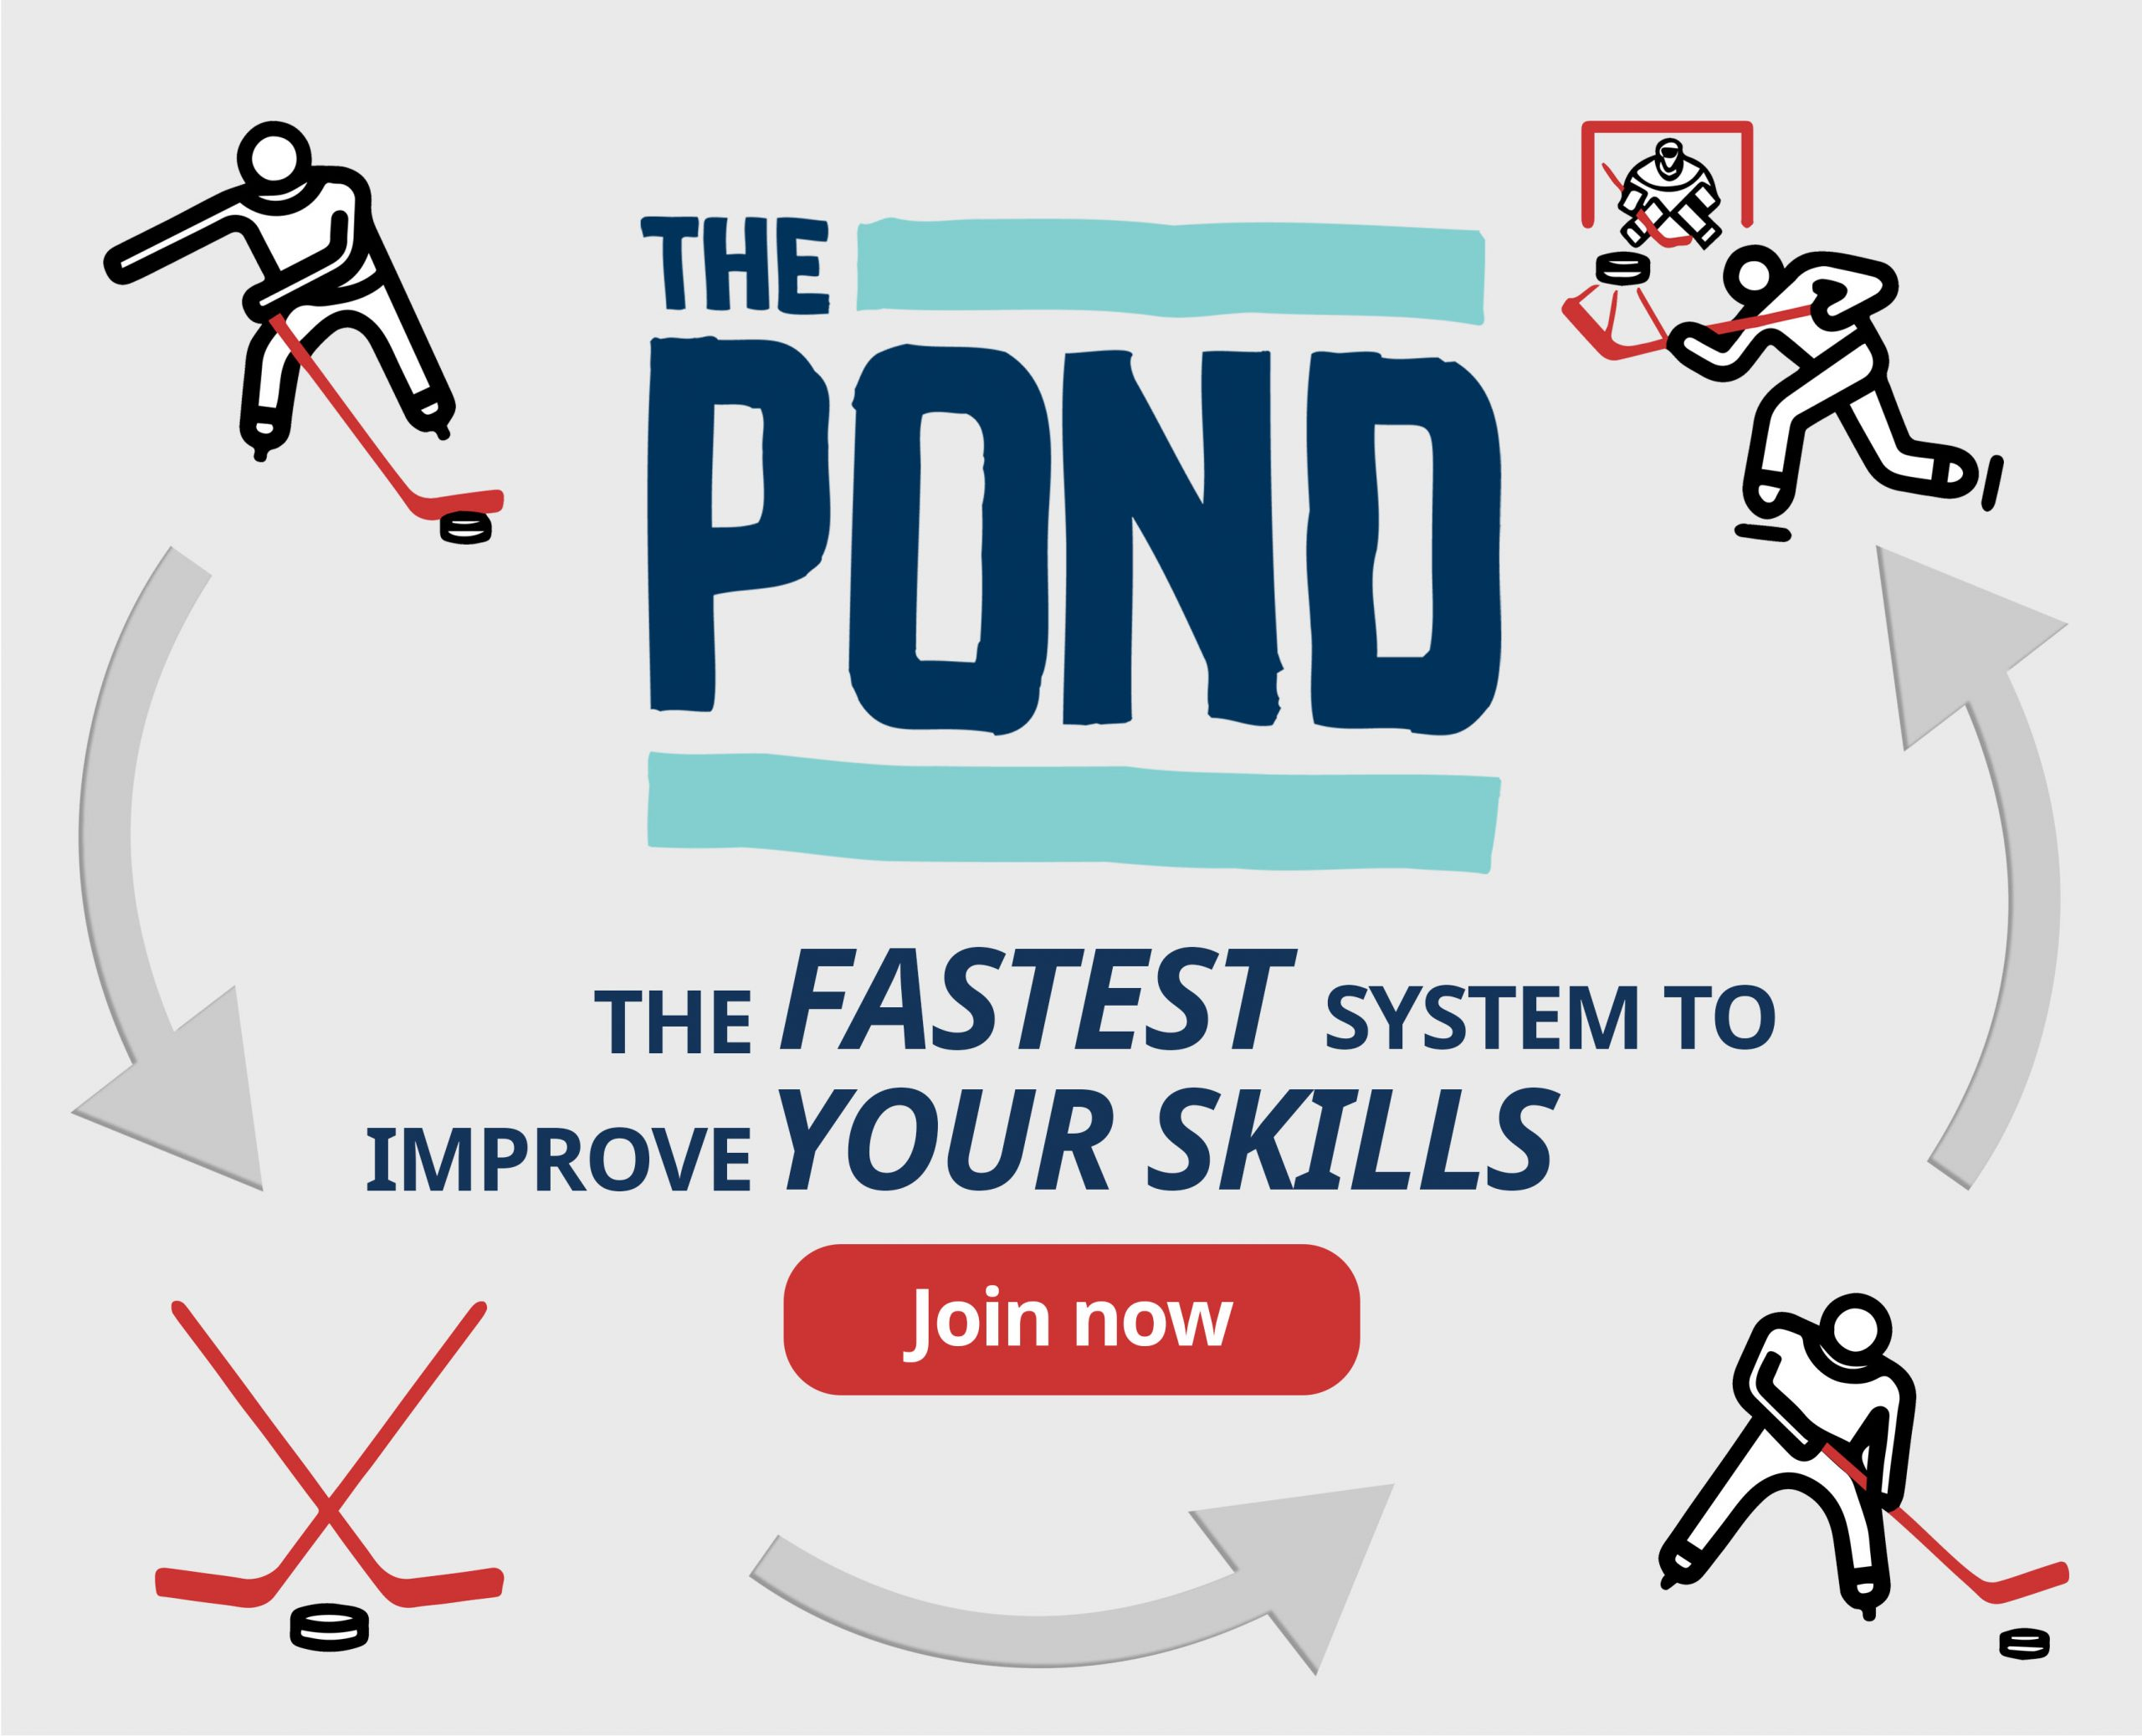 The Pond - Join now!